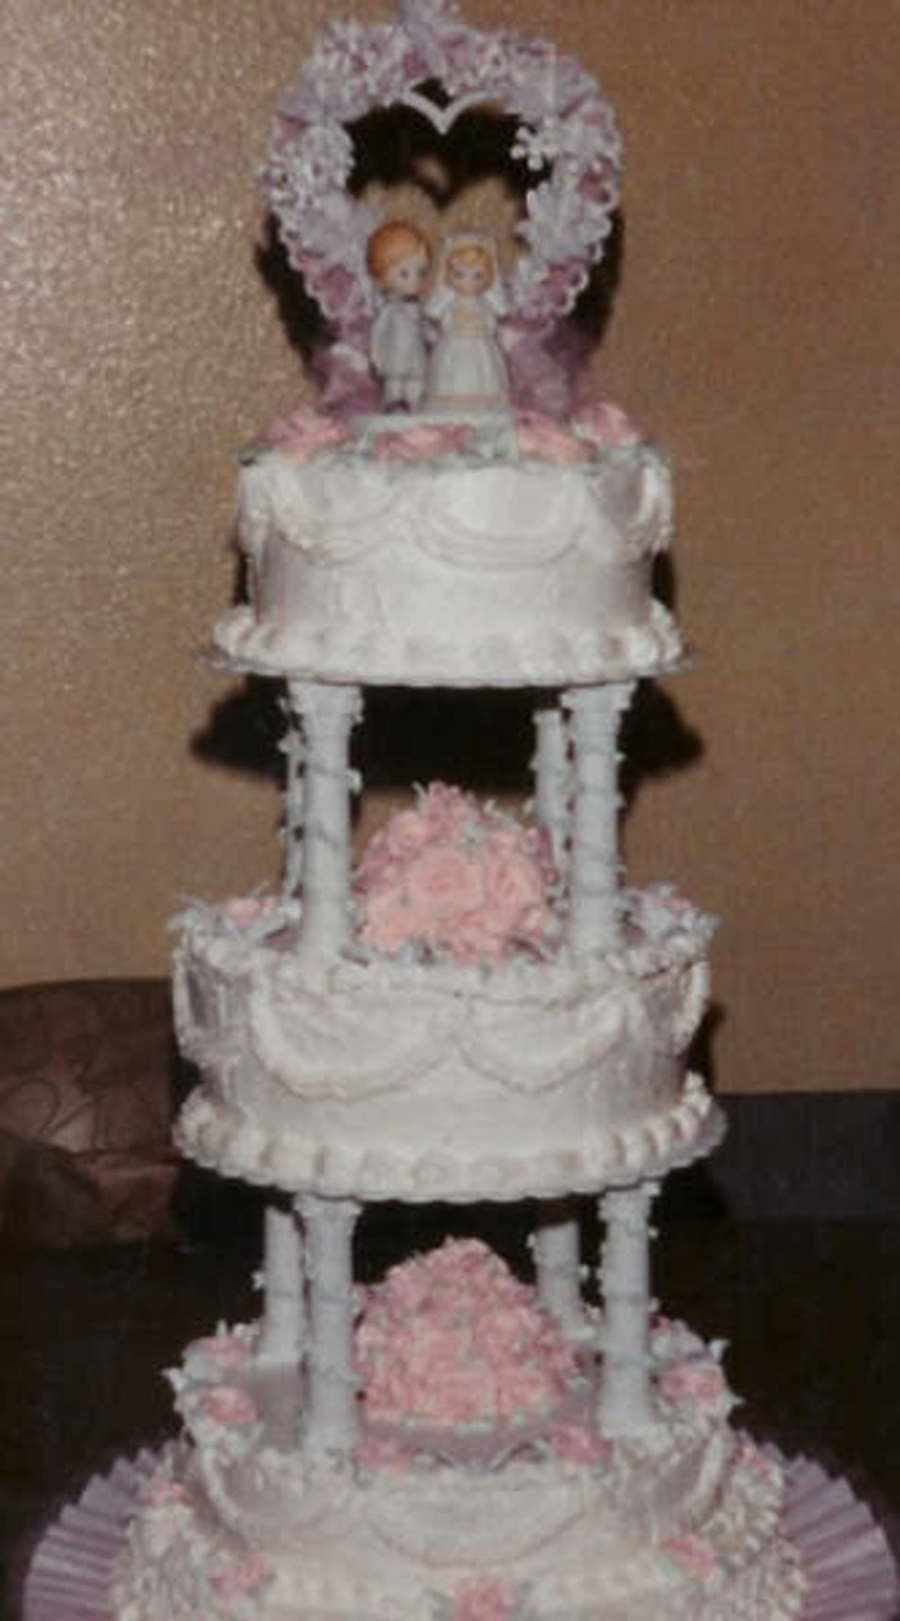 Precious Moments 3 Tier Stacked Wpillars Round White Cake With Handmade Pink Buttercream Roses